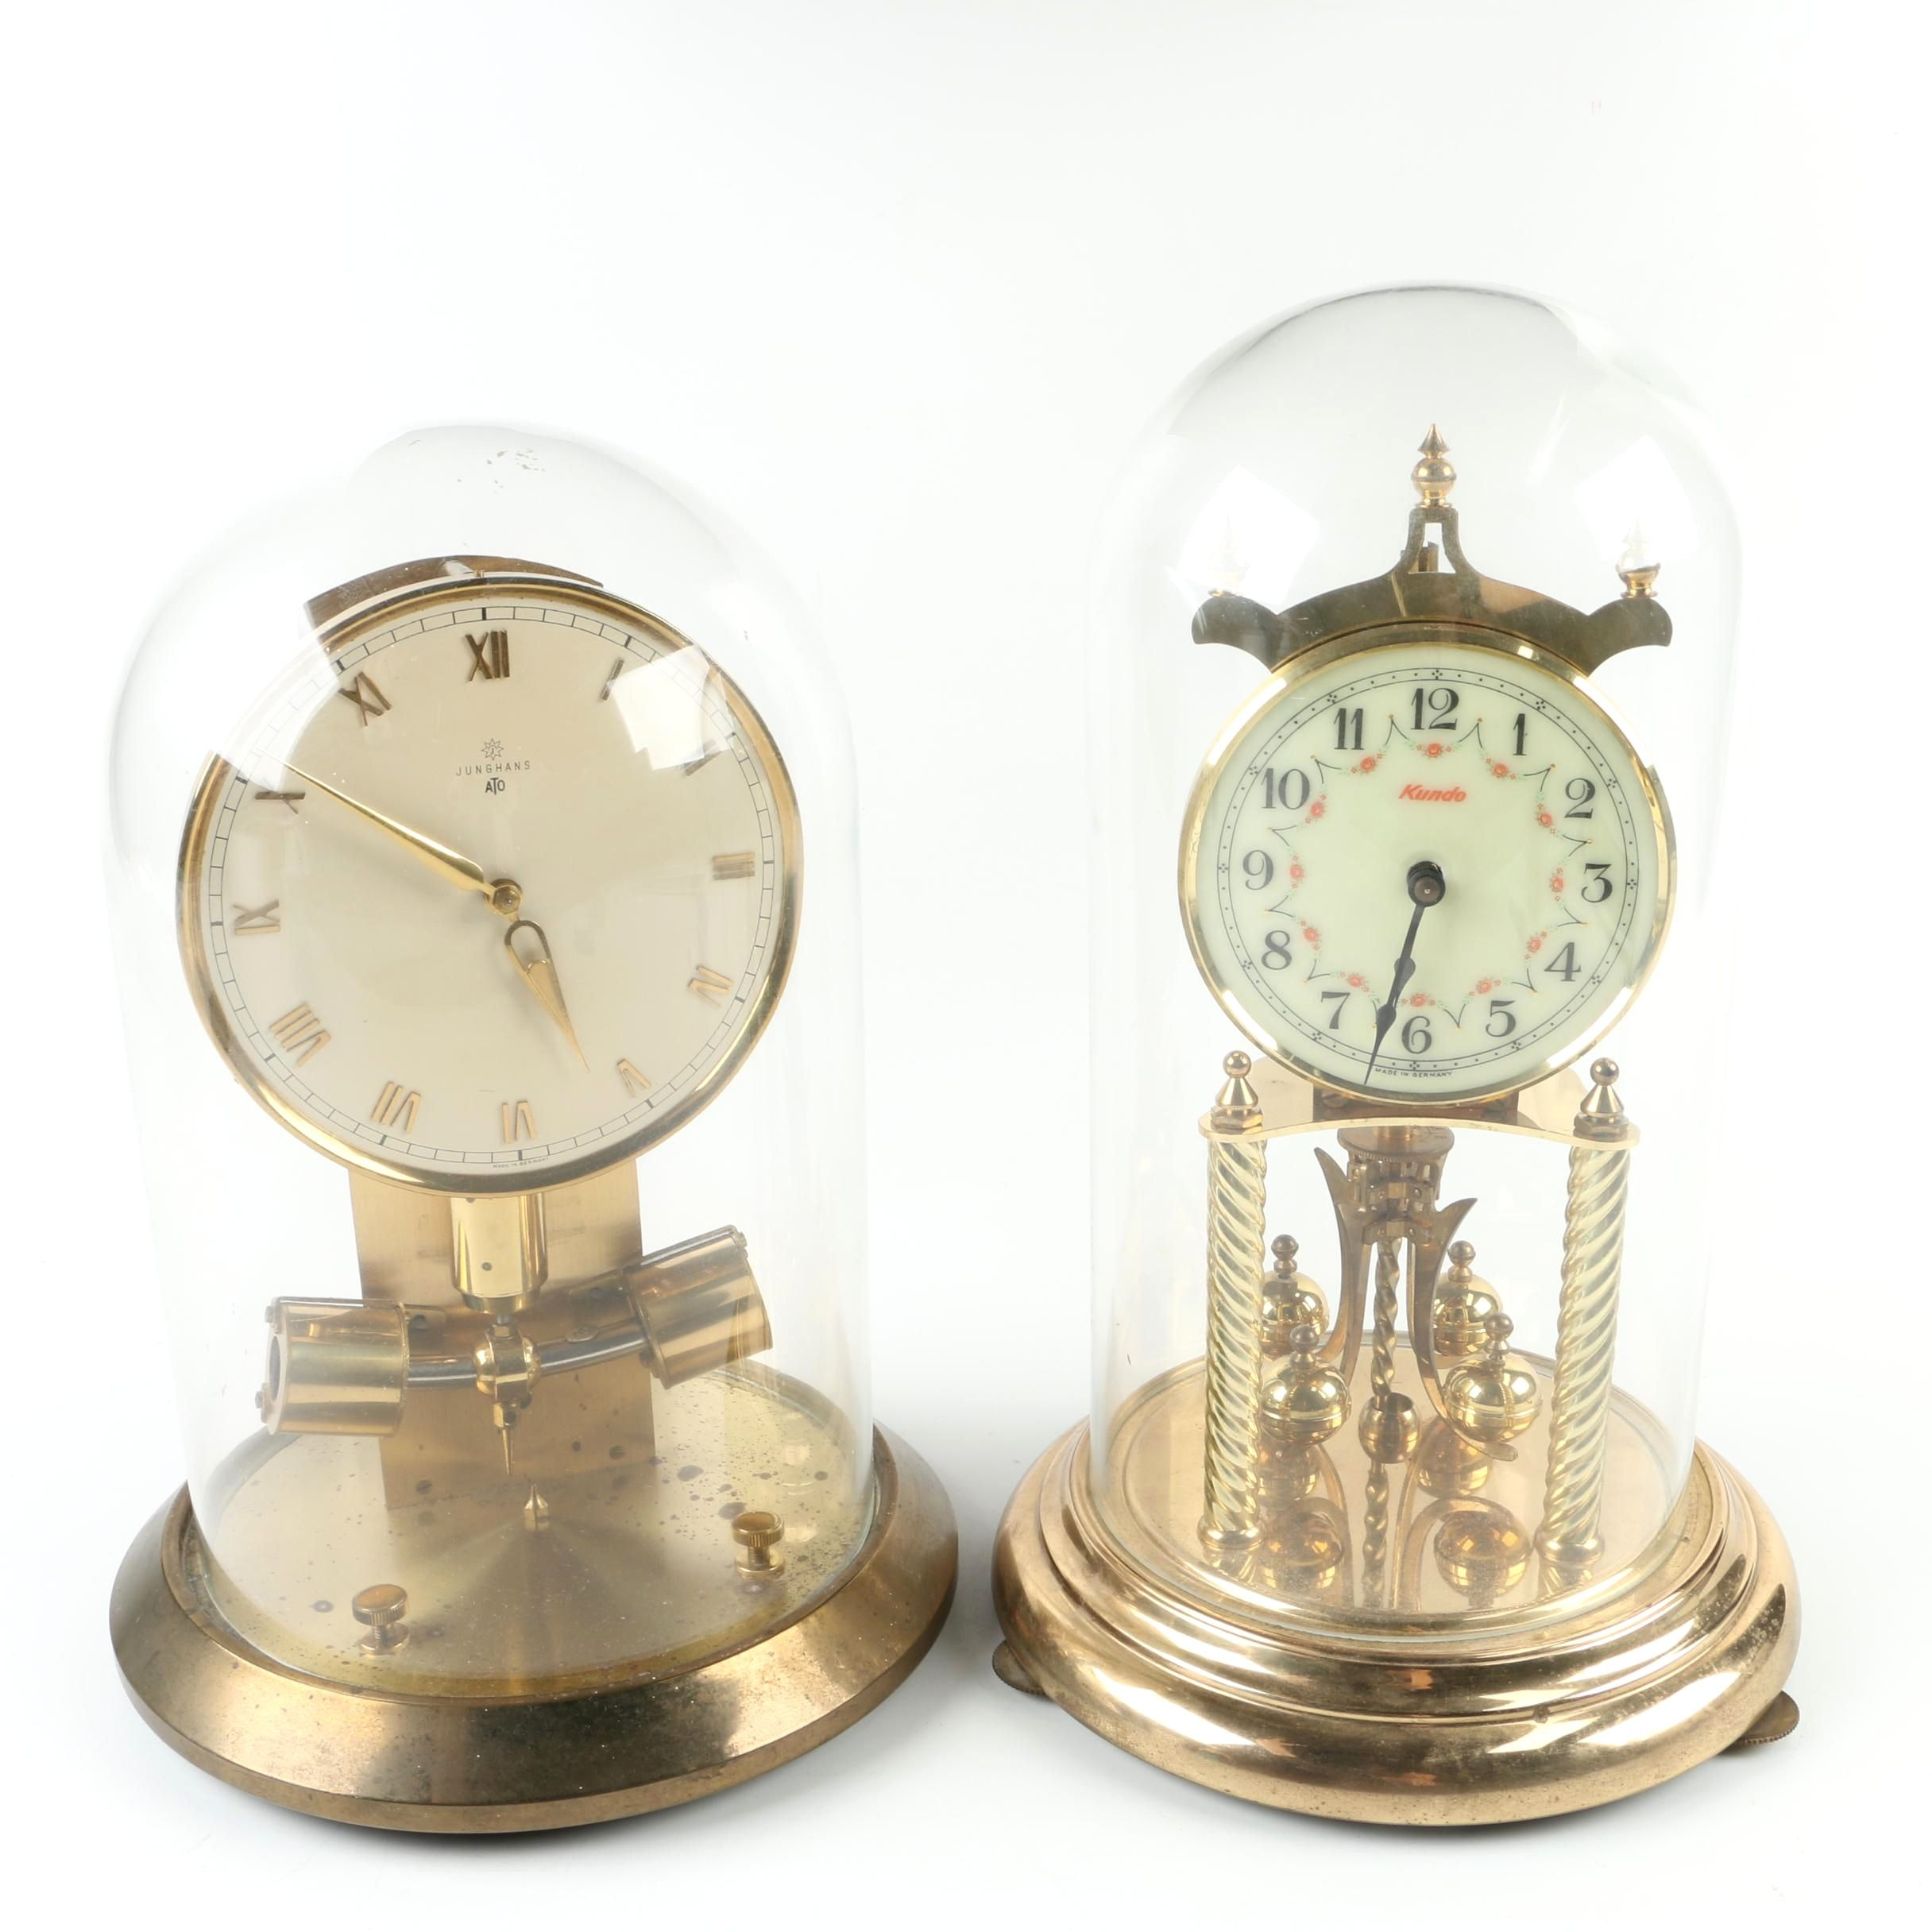 Kundo and Junghaus Anniversary Clocks